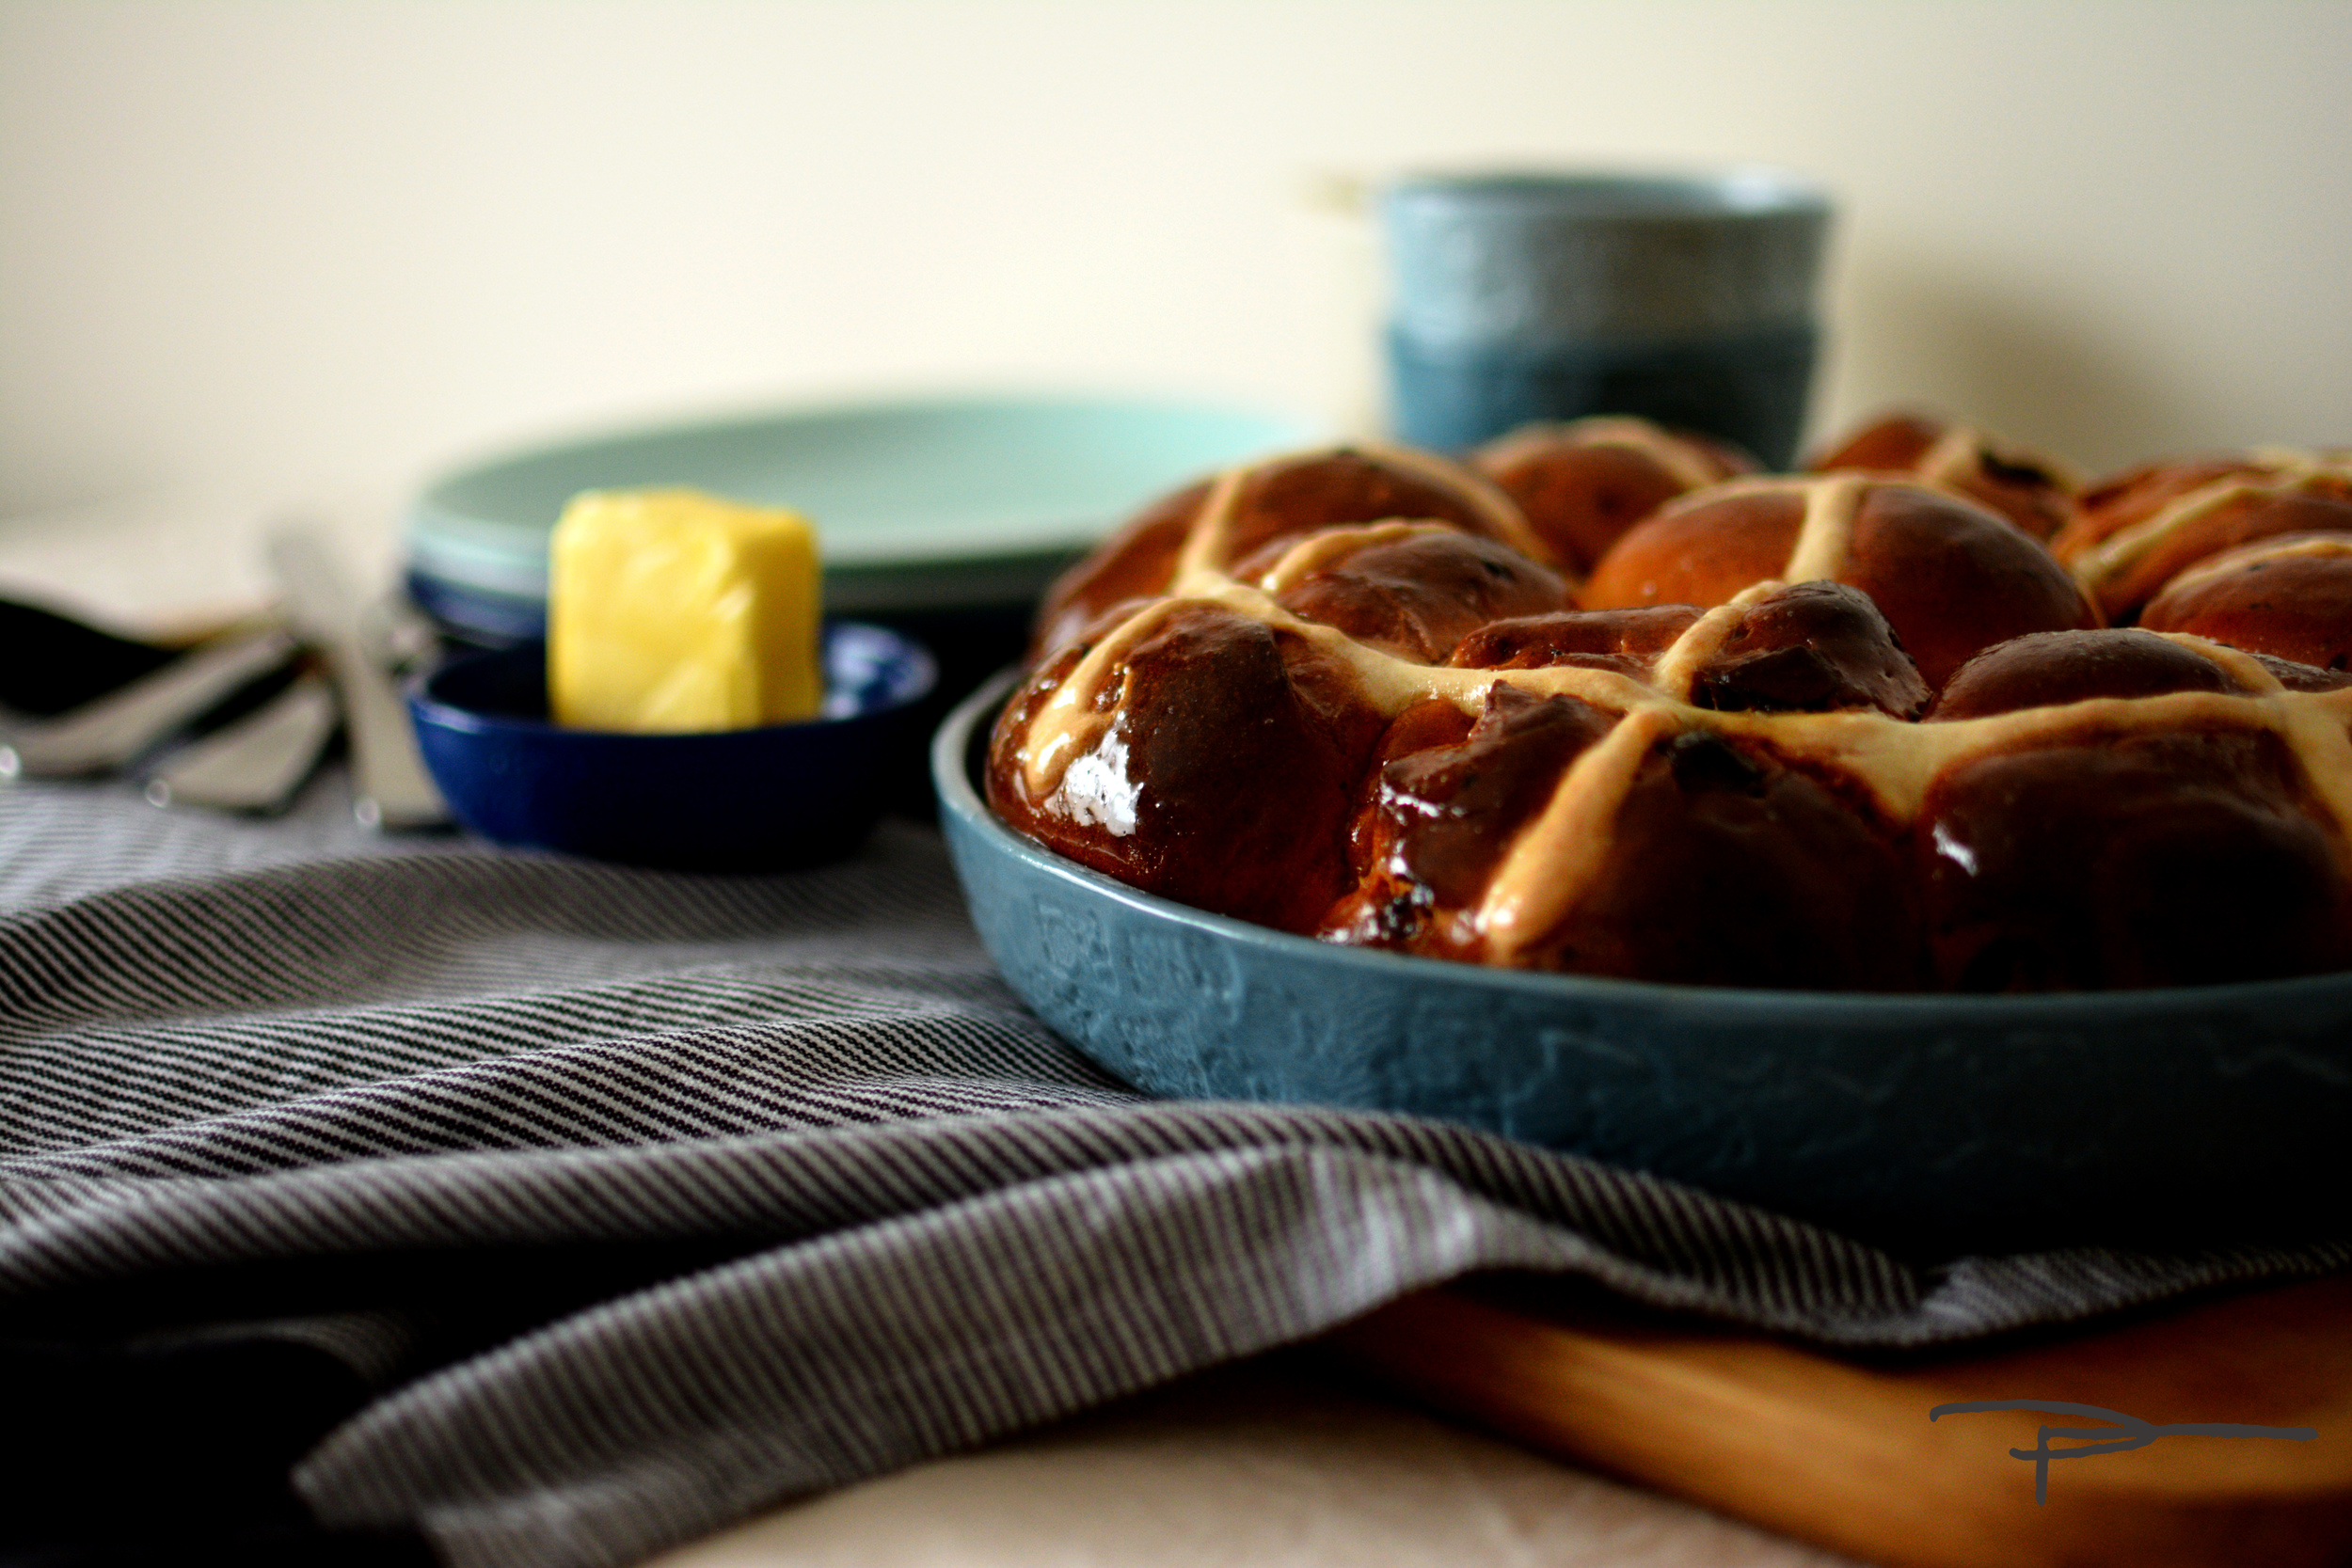 Dark Chocolate Hot Cross buns baked in a Plattertastic